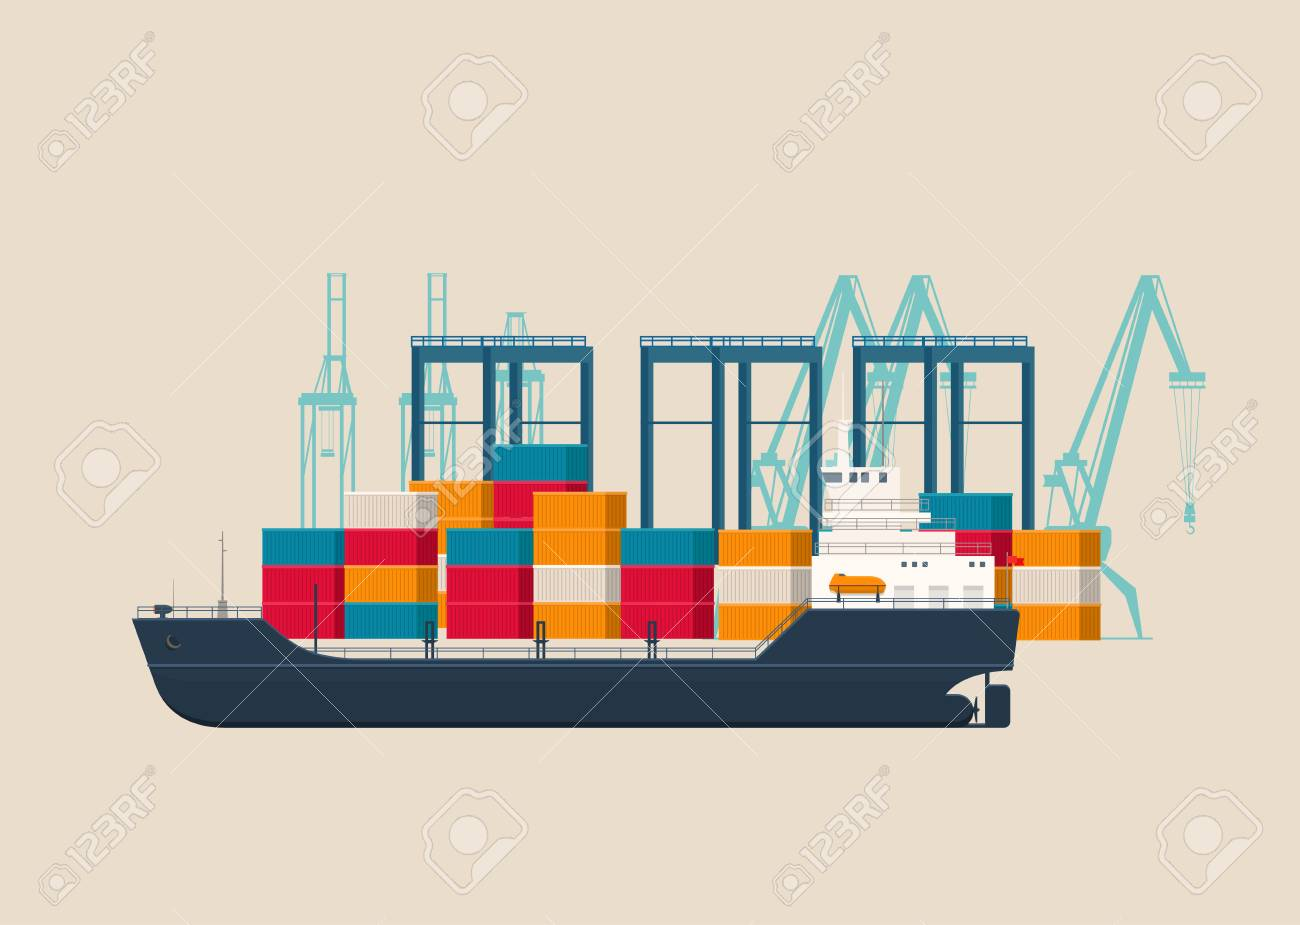 hight resolution of empty cargo ship in the container terminal stock vector 103923025